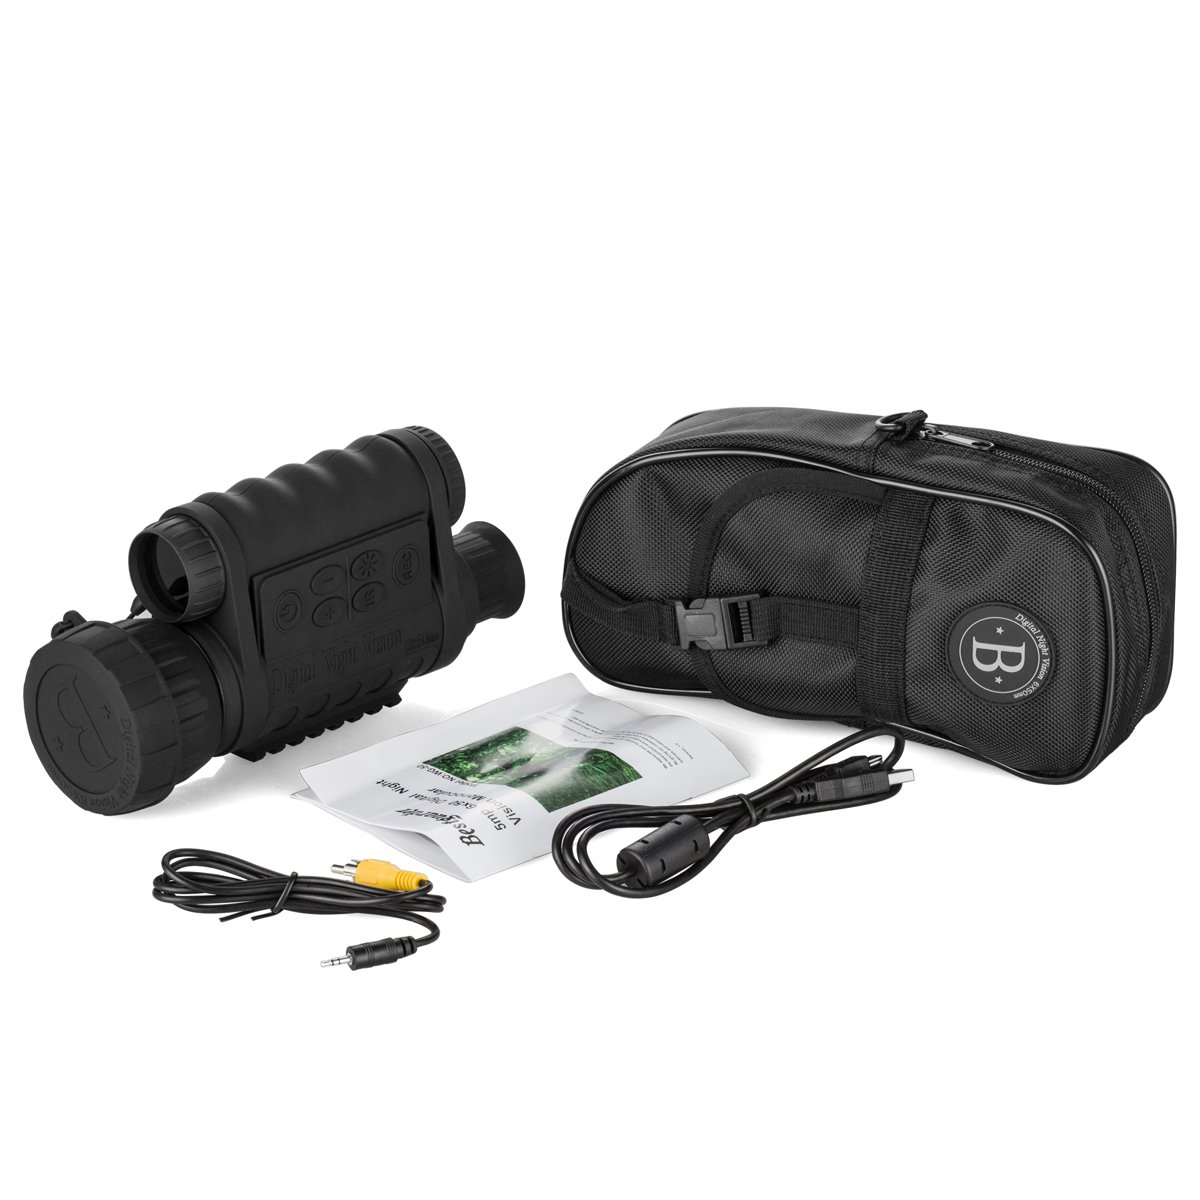 Gemtune WG-50 6x50mm HD Digital Night Vision Monocular with 1.5 inch TFT LCD Camera and Camcorder Function Takes 5mp Photo 720p Video from 350m Distance for night watching or observation by GemTune (Image #7)